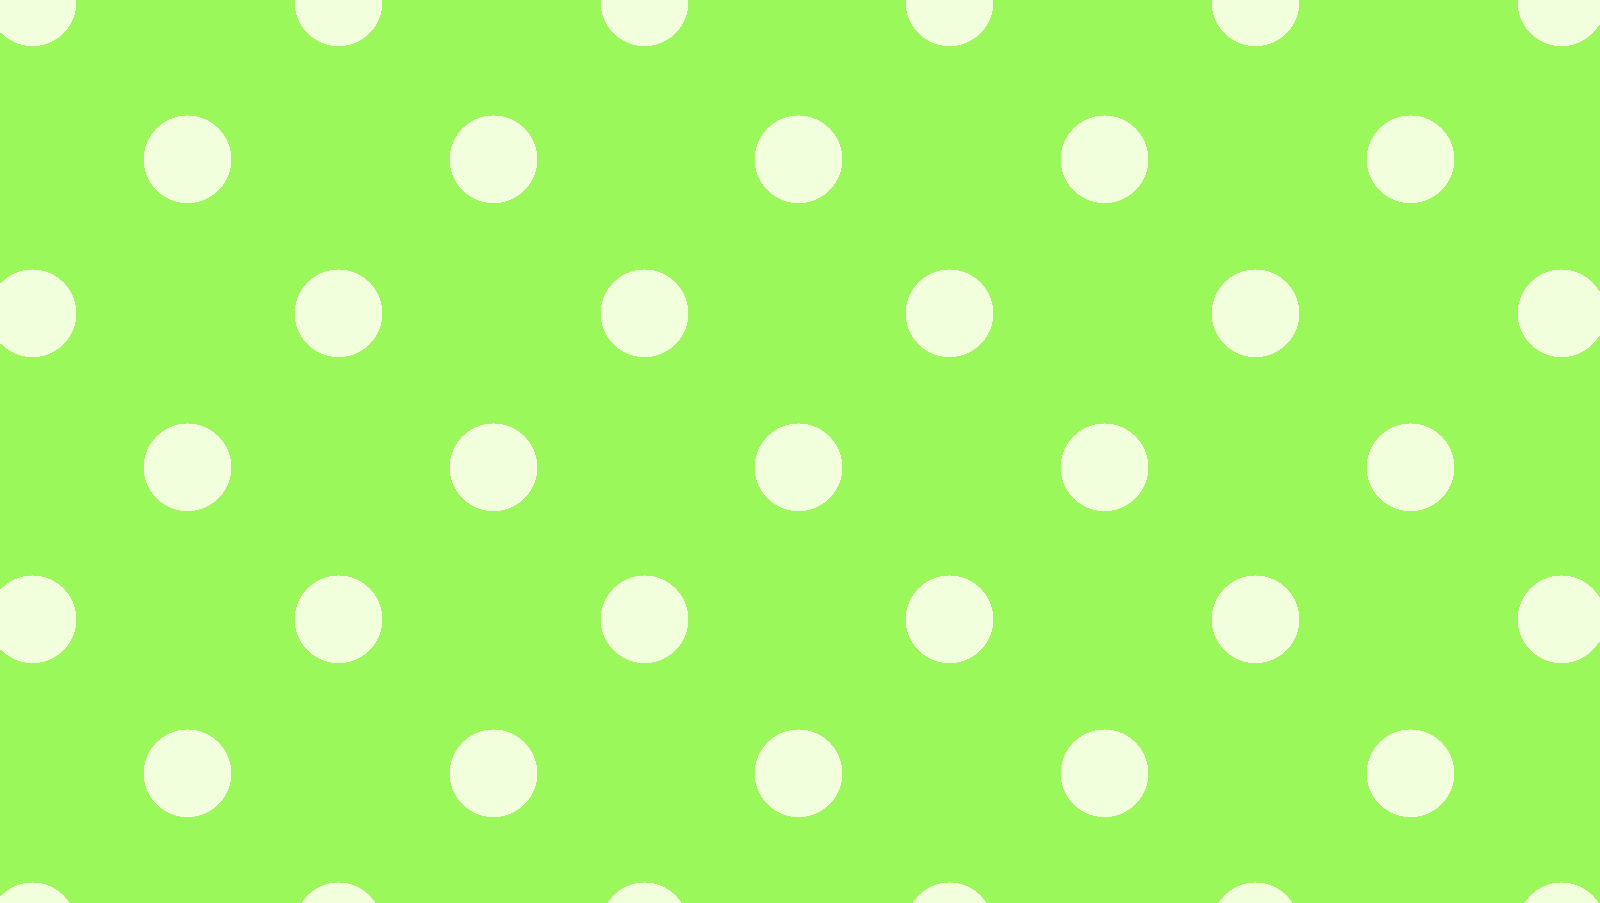 1600x903 Neon Clipart Green Dot